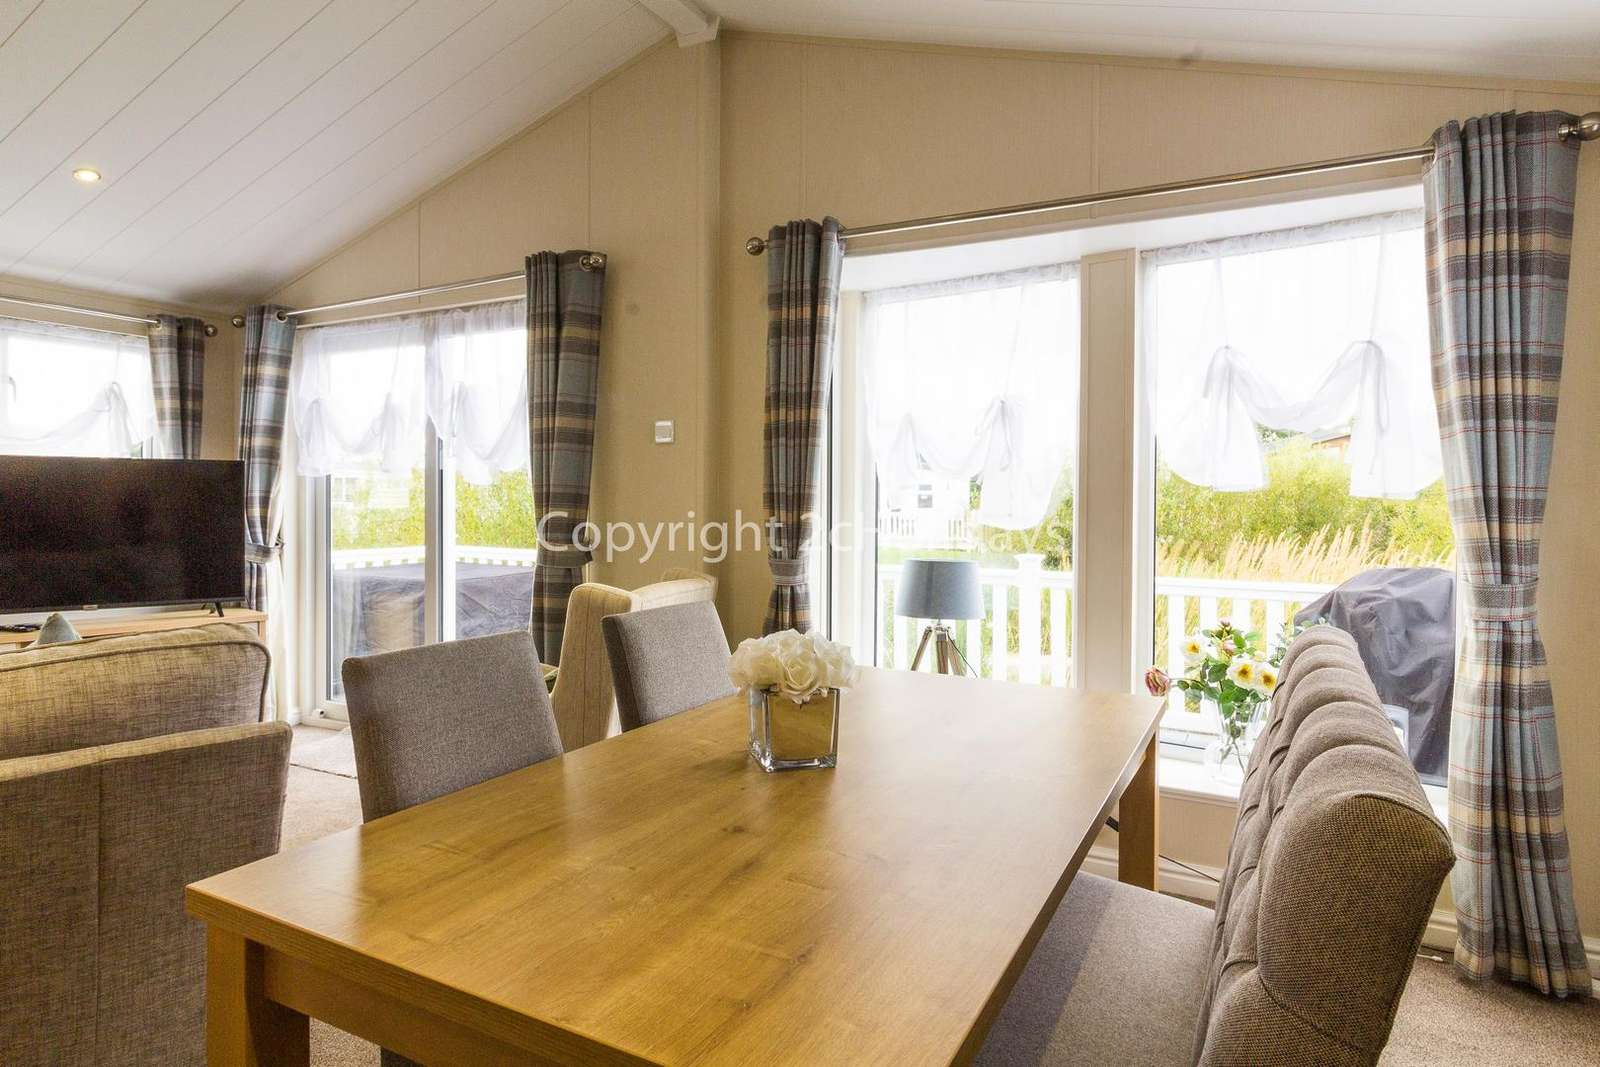 Perfect place to dine with friends or family in this self-catering accommodation